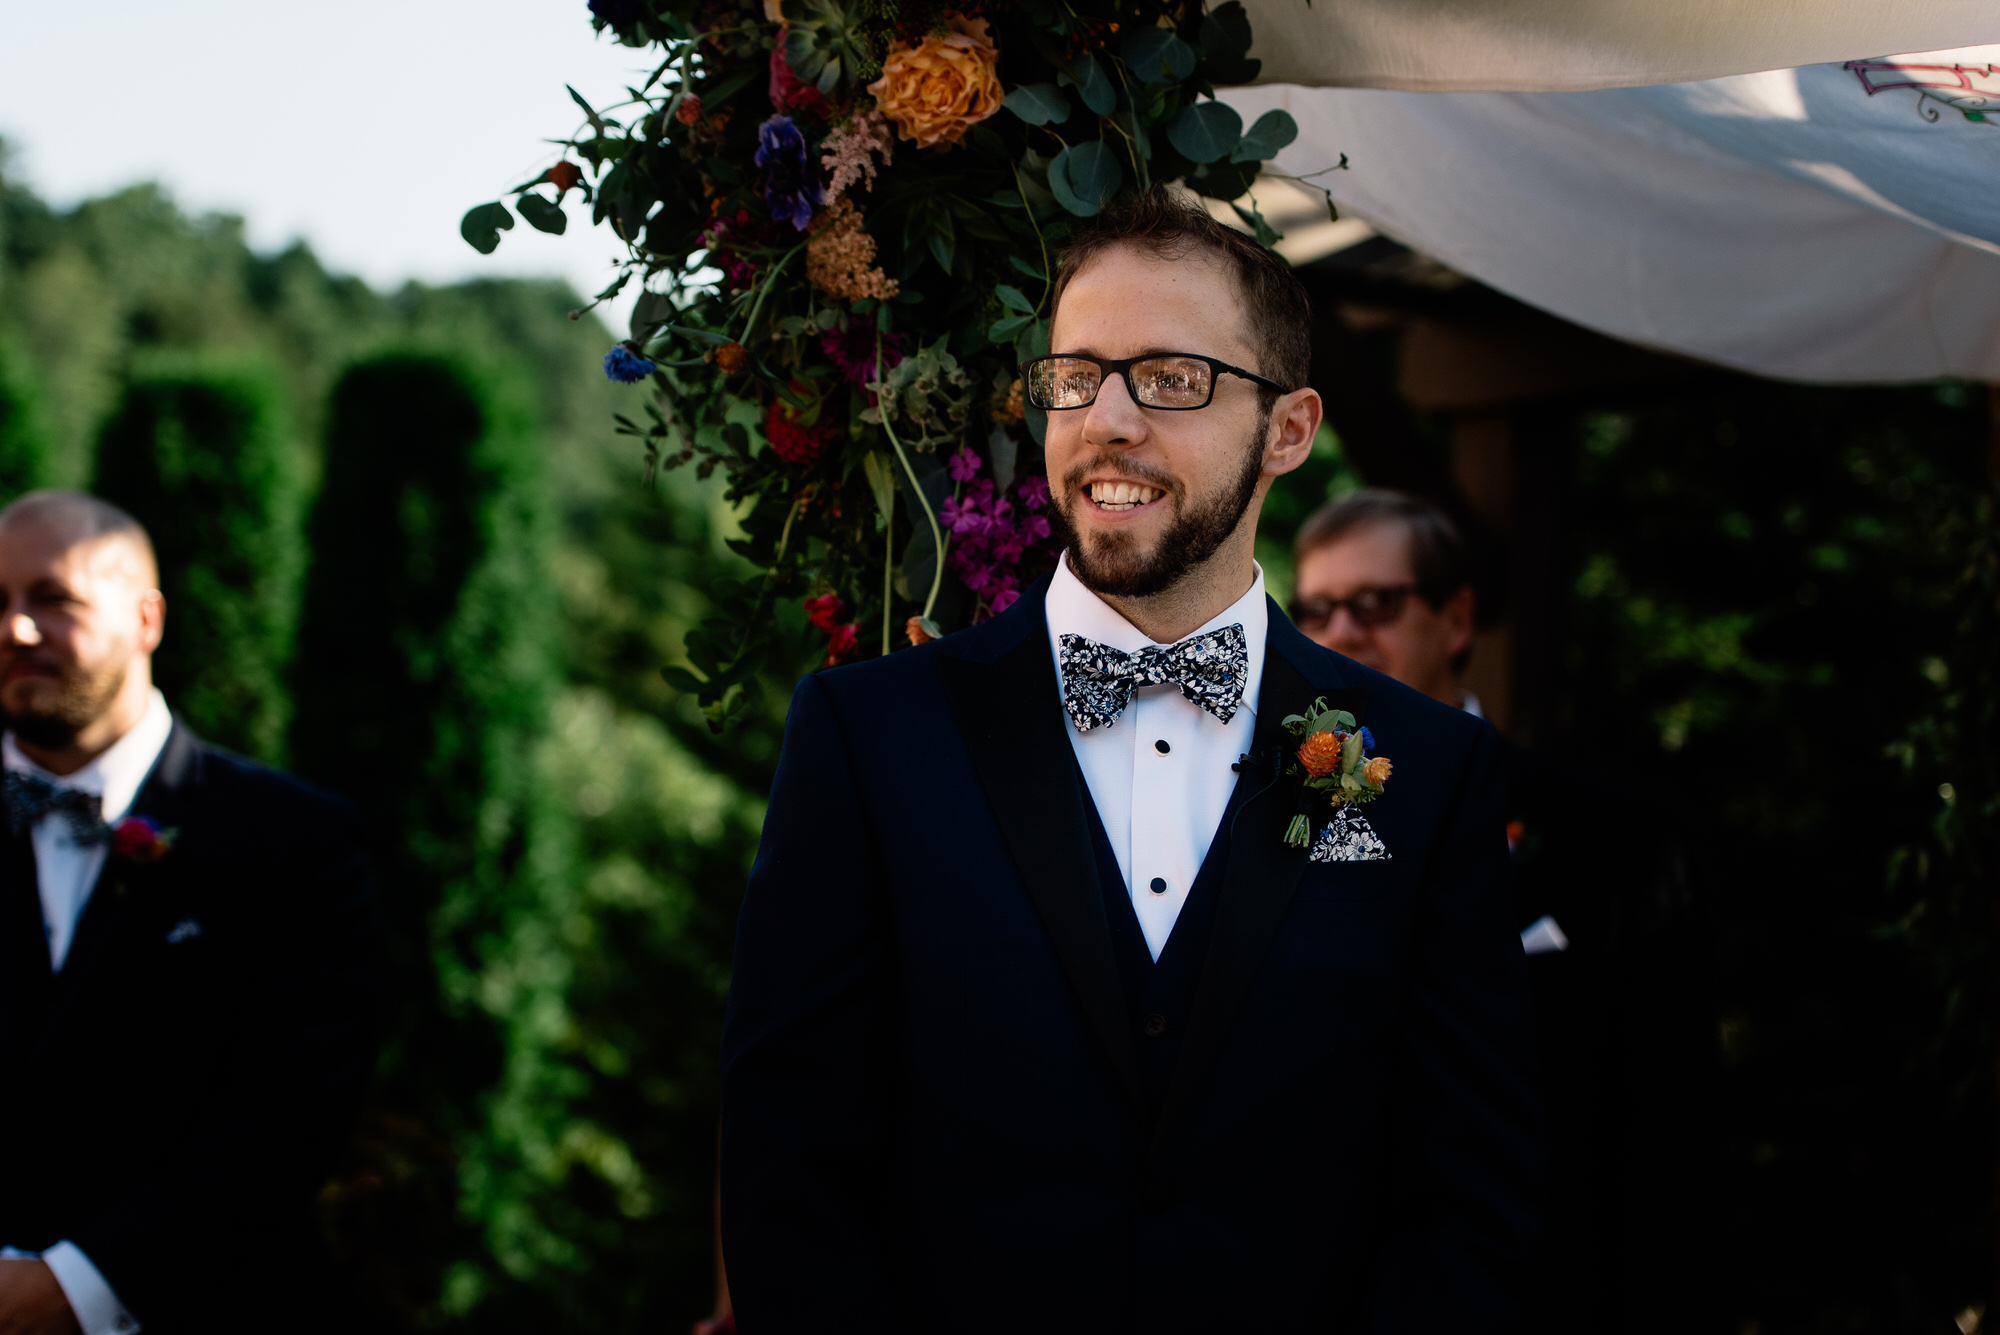 Bear_Creek_Mountain_Wedding_048.jpg